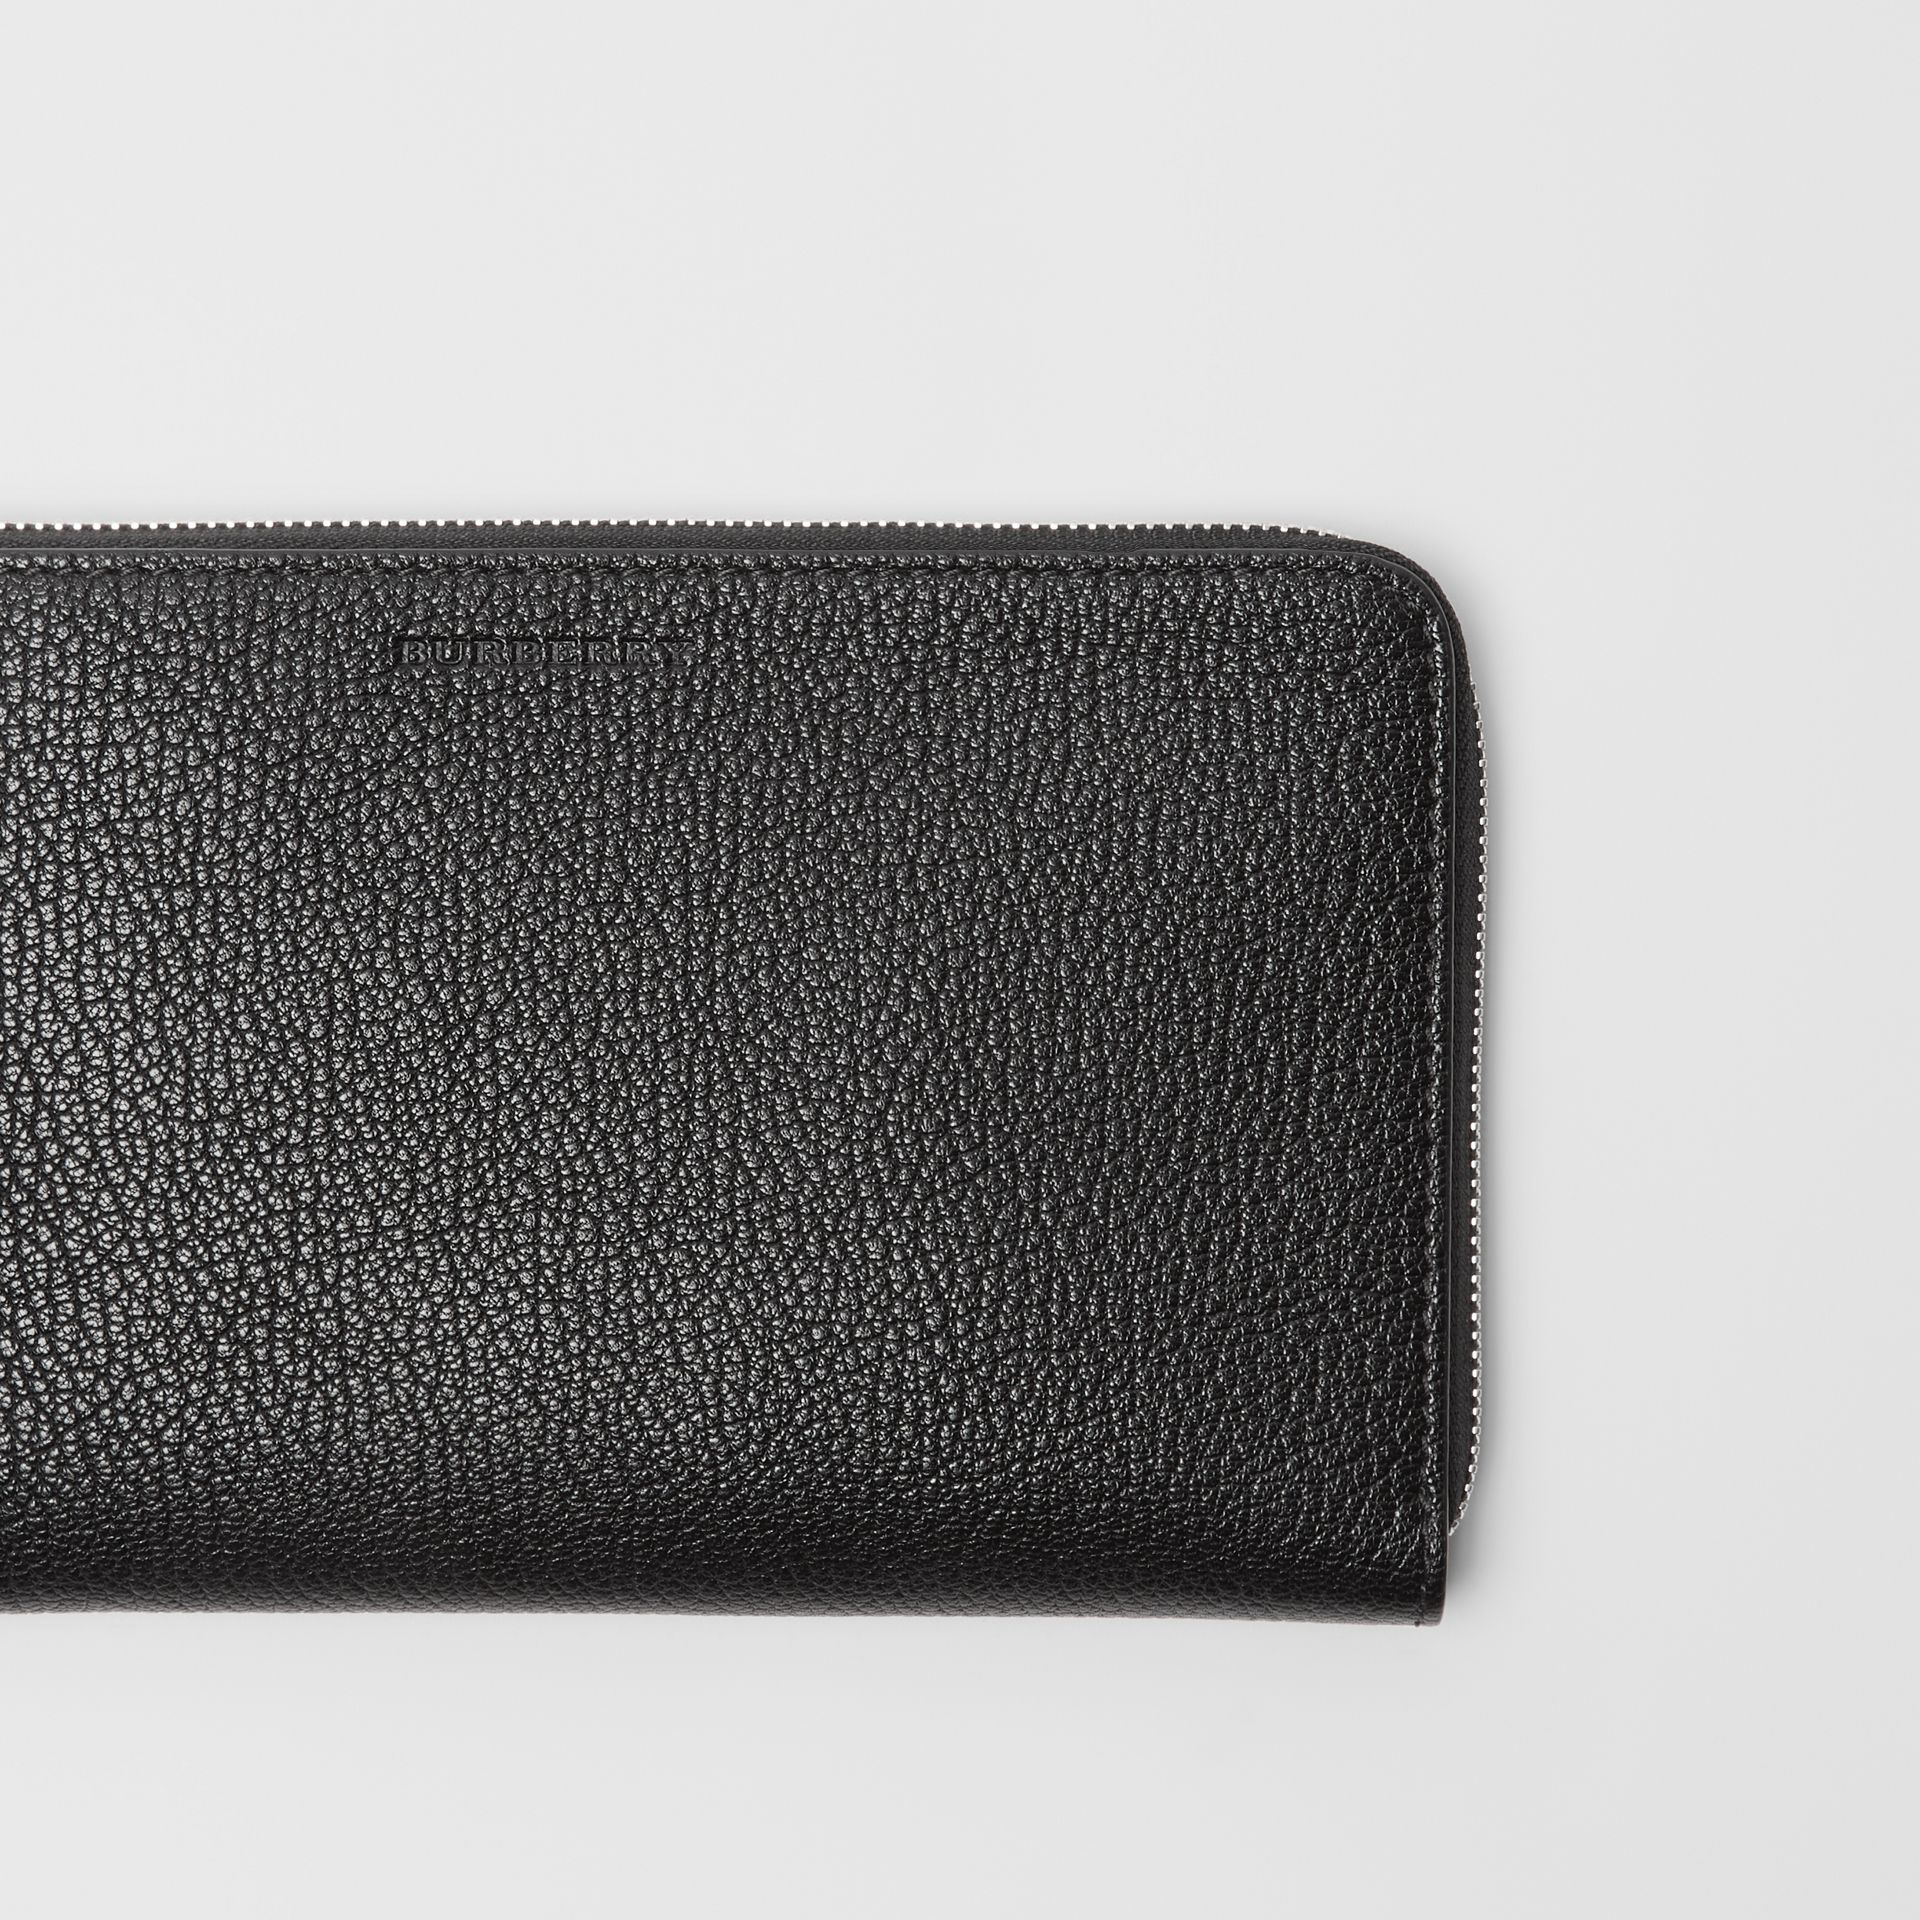 Two-tone Grainy Leather Travel Wallet in Black | Burberry United States - gallery image 1